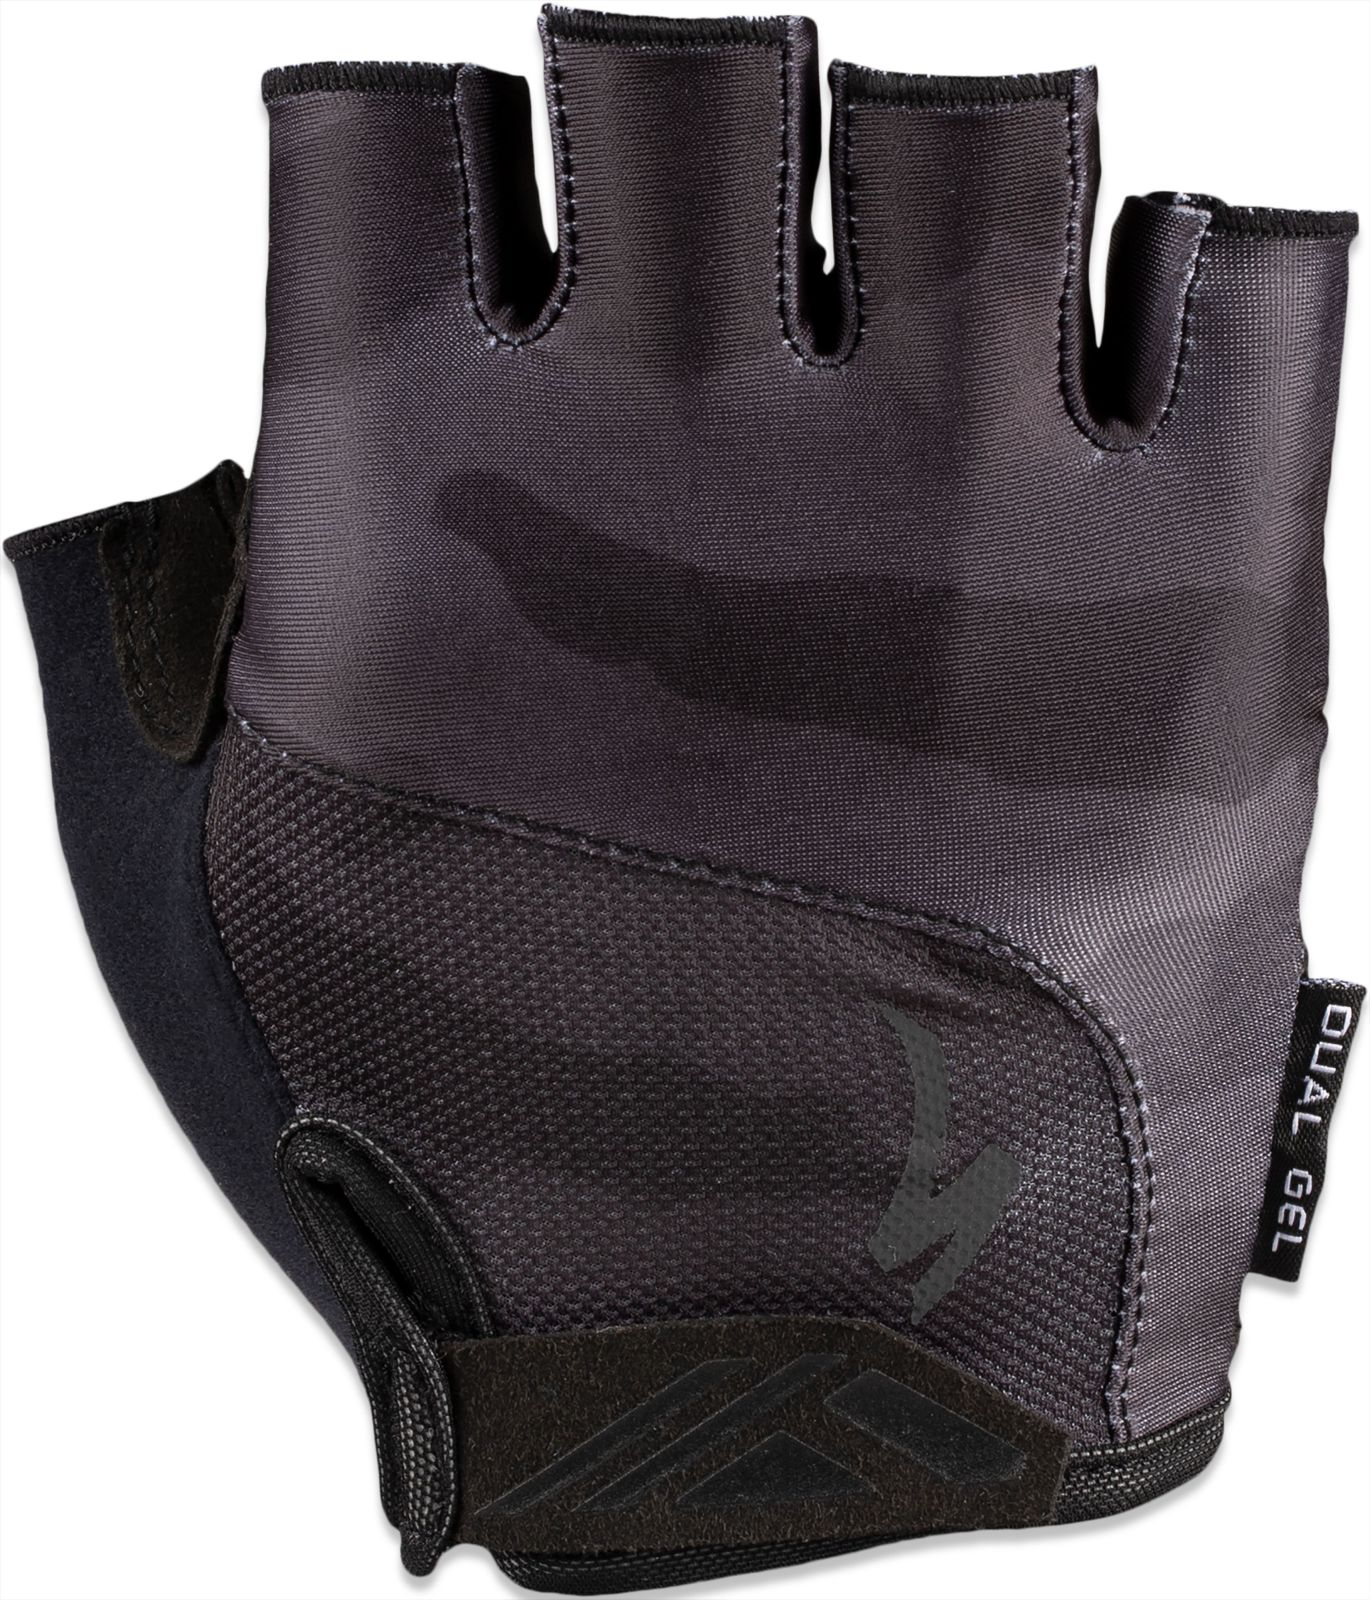 Specialized BG Dual Gel Glove SF - black/charcoal camo XL